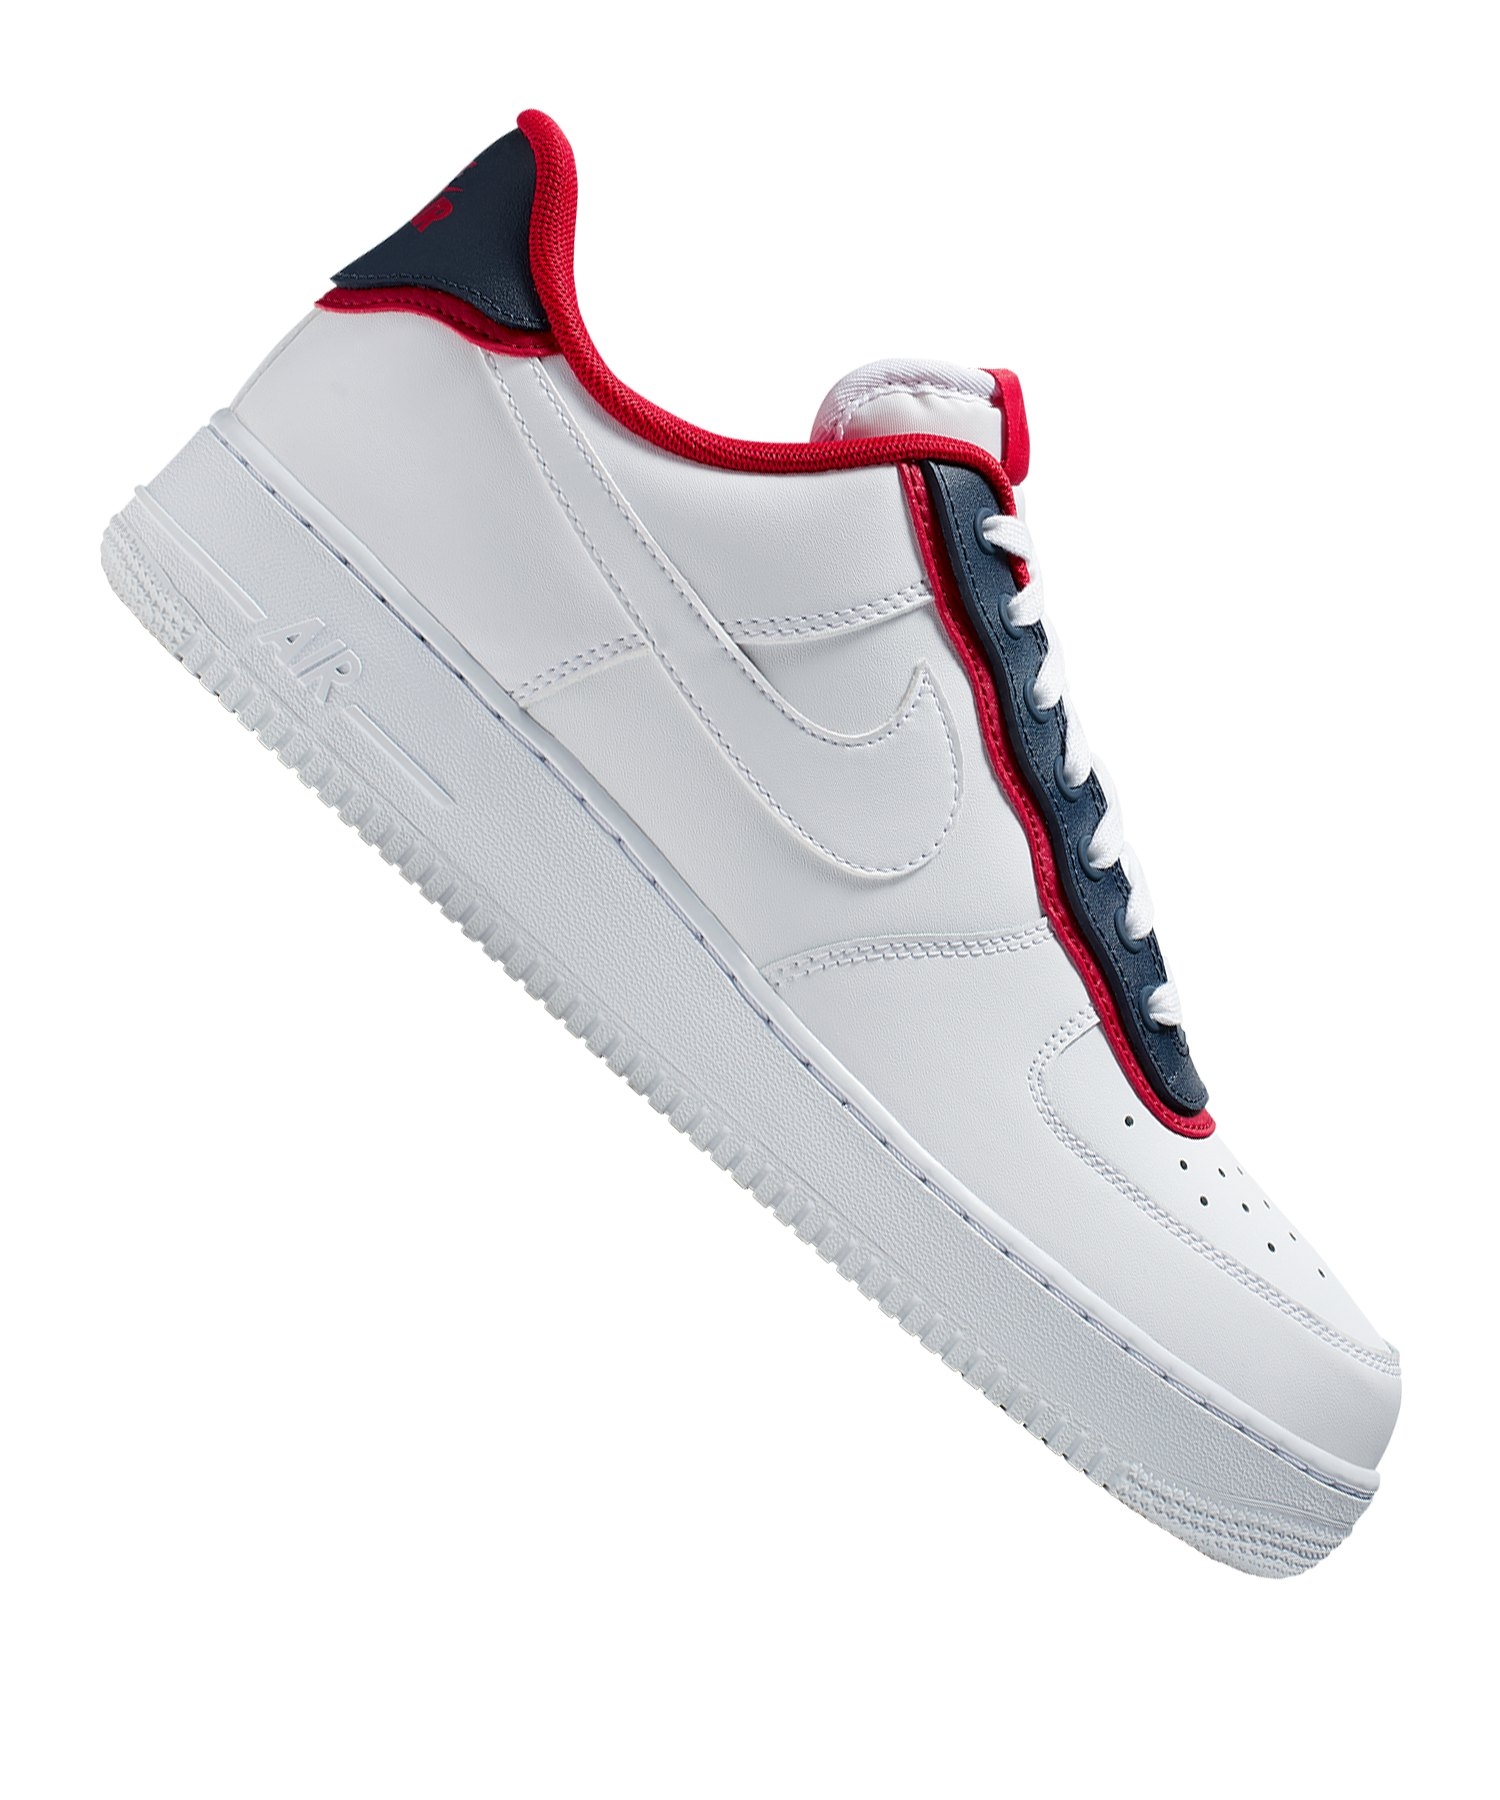 Nike Air Force 1 07 LV8 Sneaker Weiss Blau F100